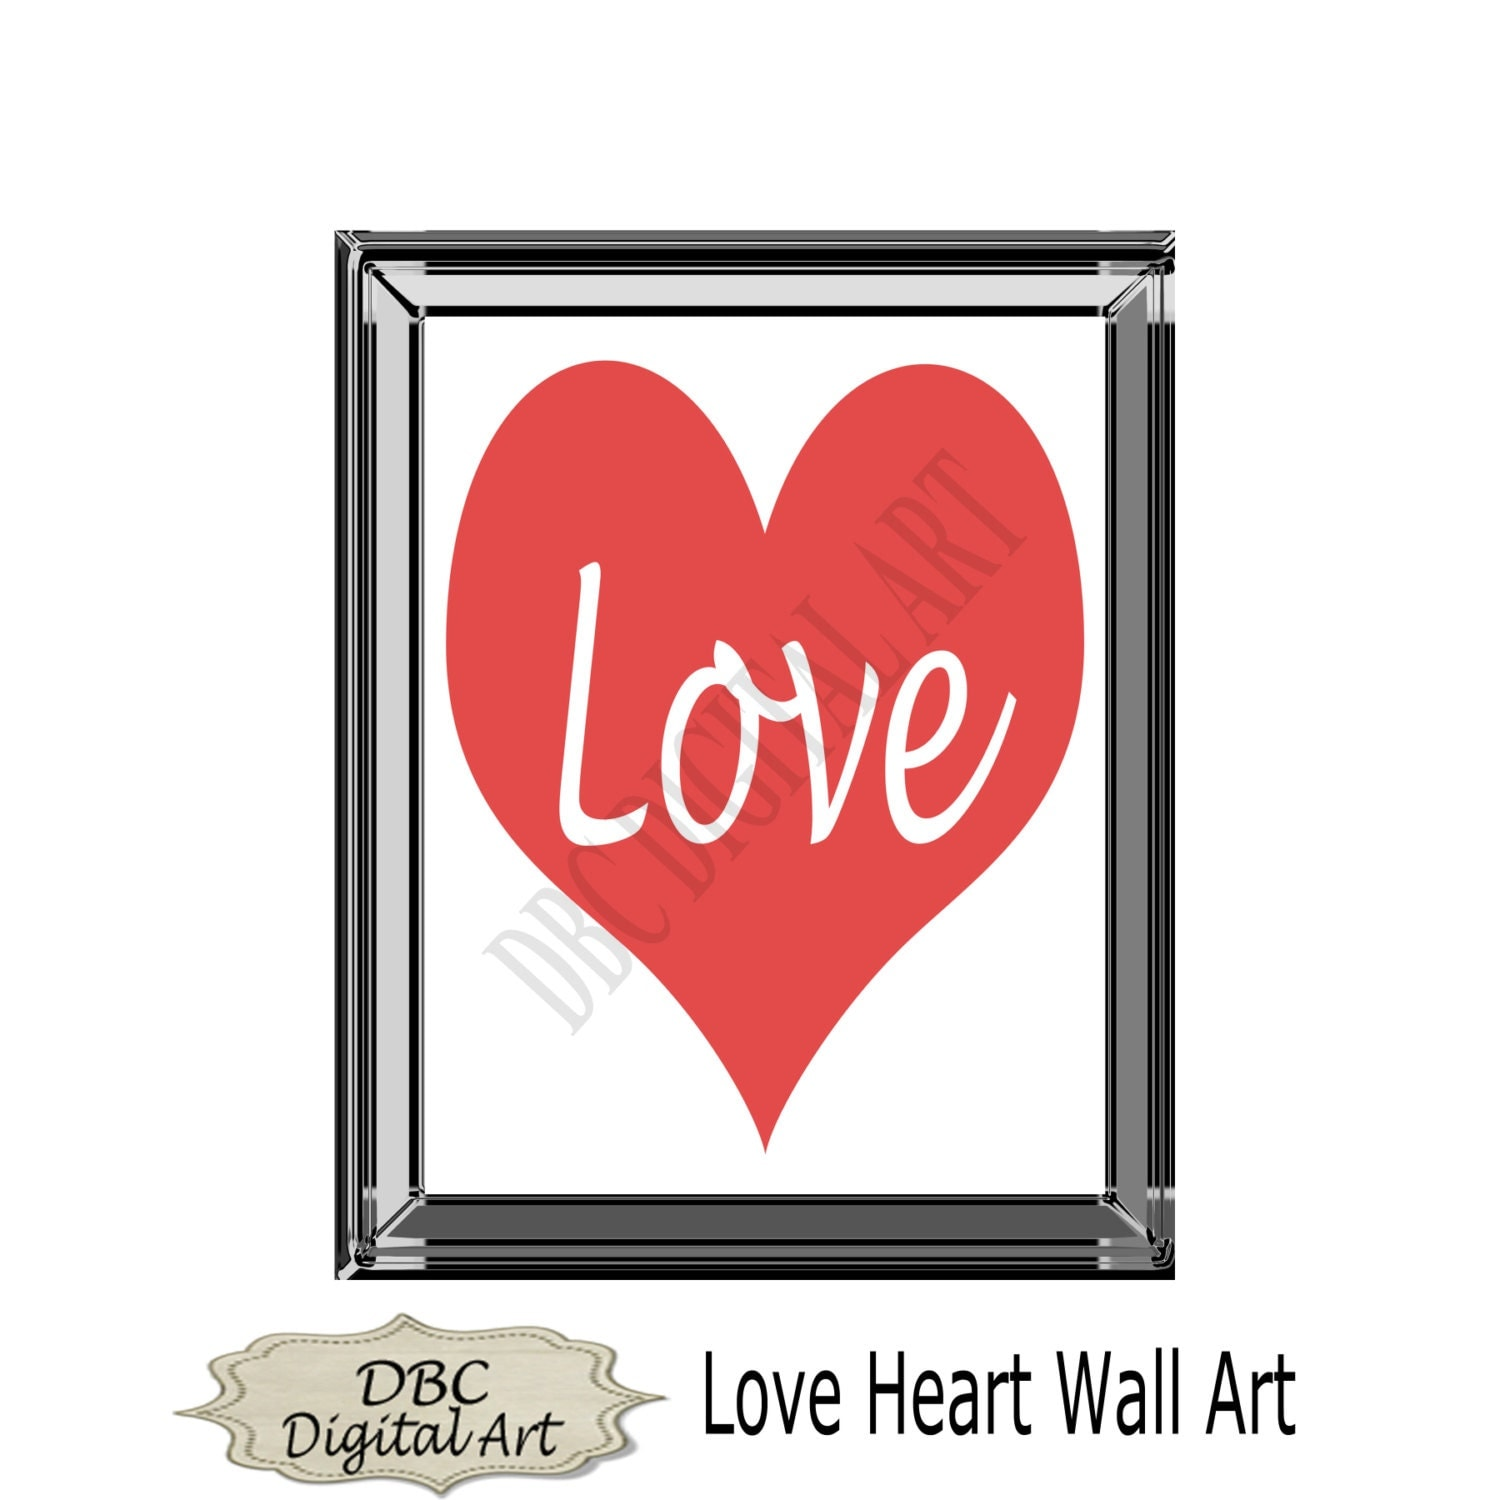 Wall Art Love Heart : Love heart wall art inspirational by